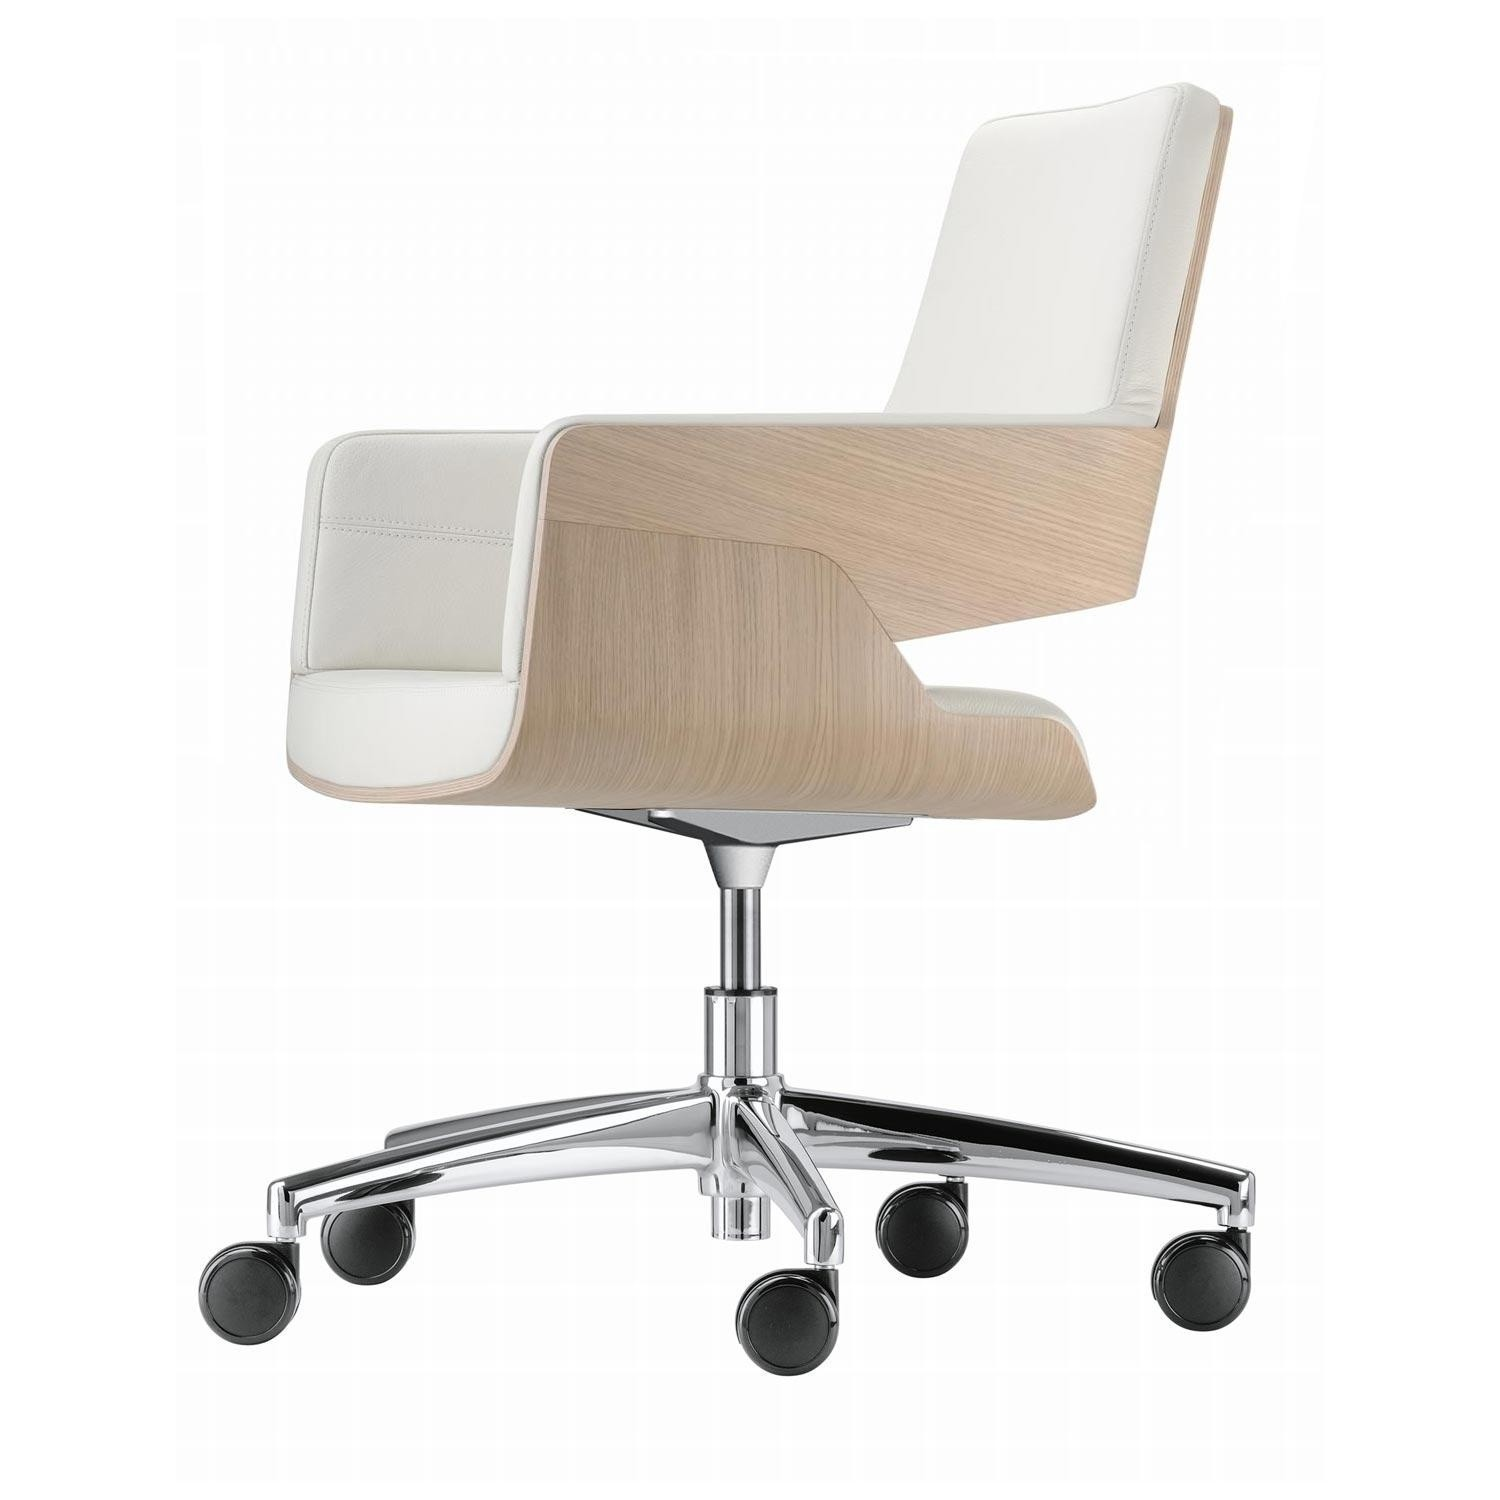 Office Chair With S Drw Thonet Wheels 845 deorCxB